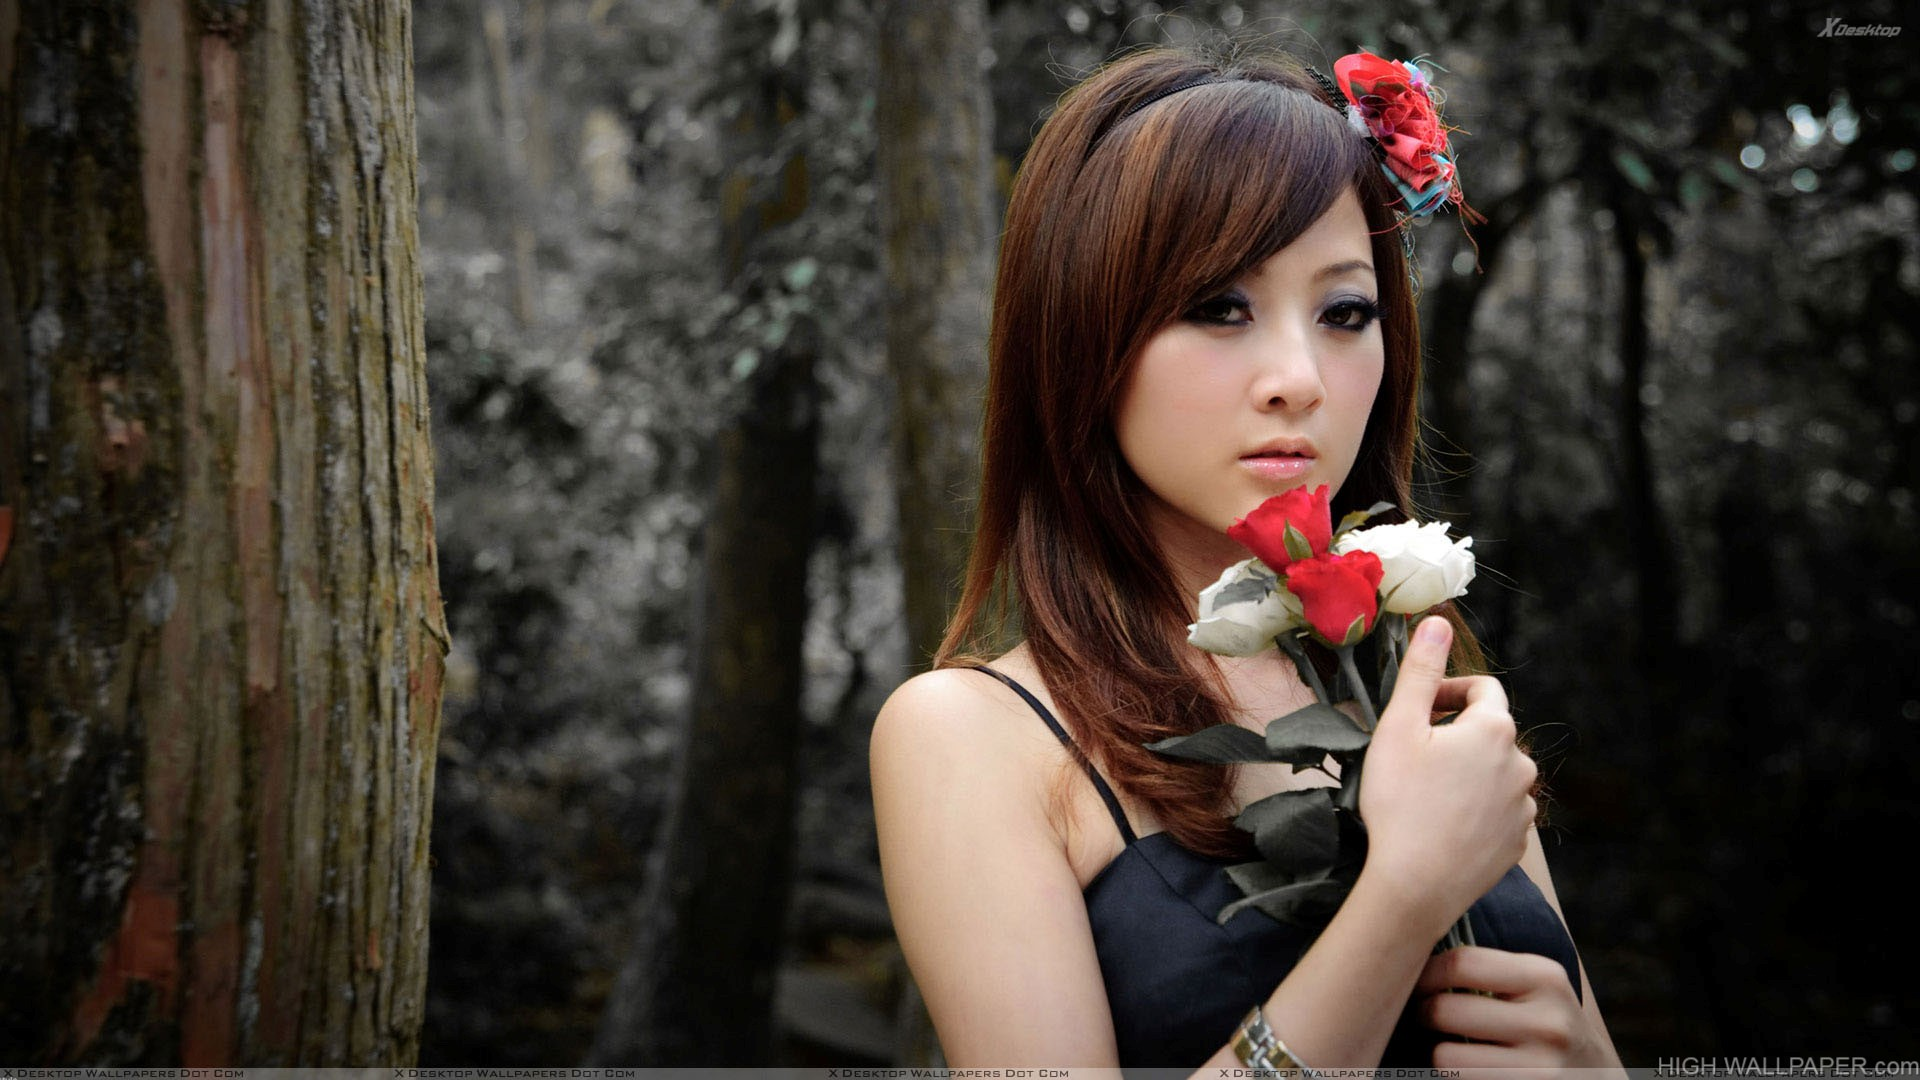 Asian Girl With Red And White Roses in Forest